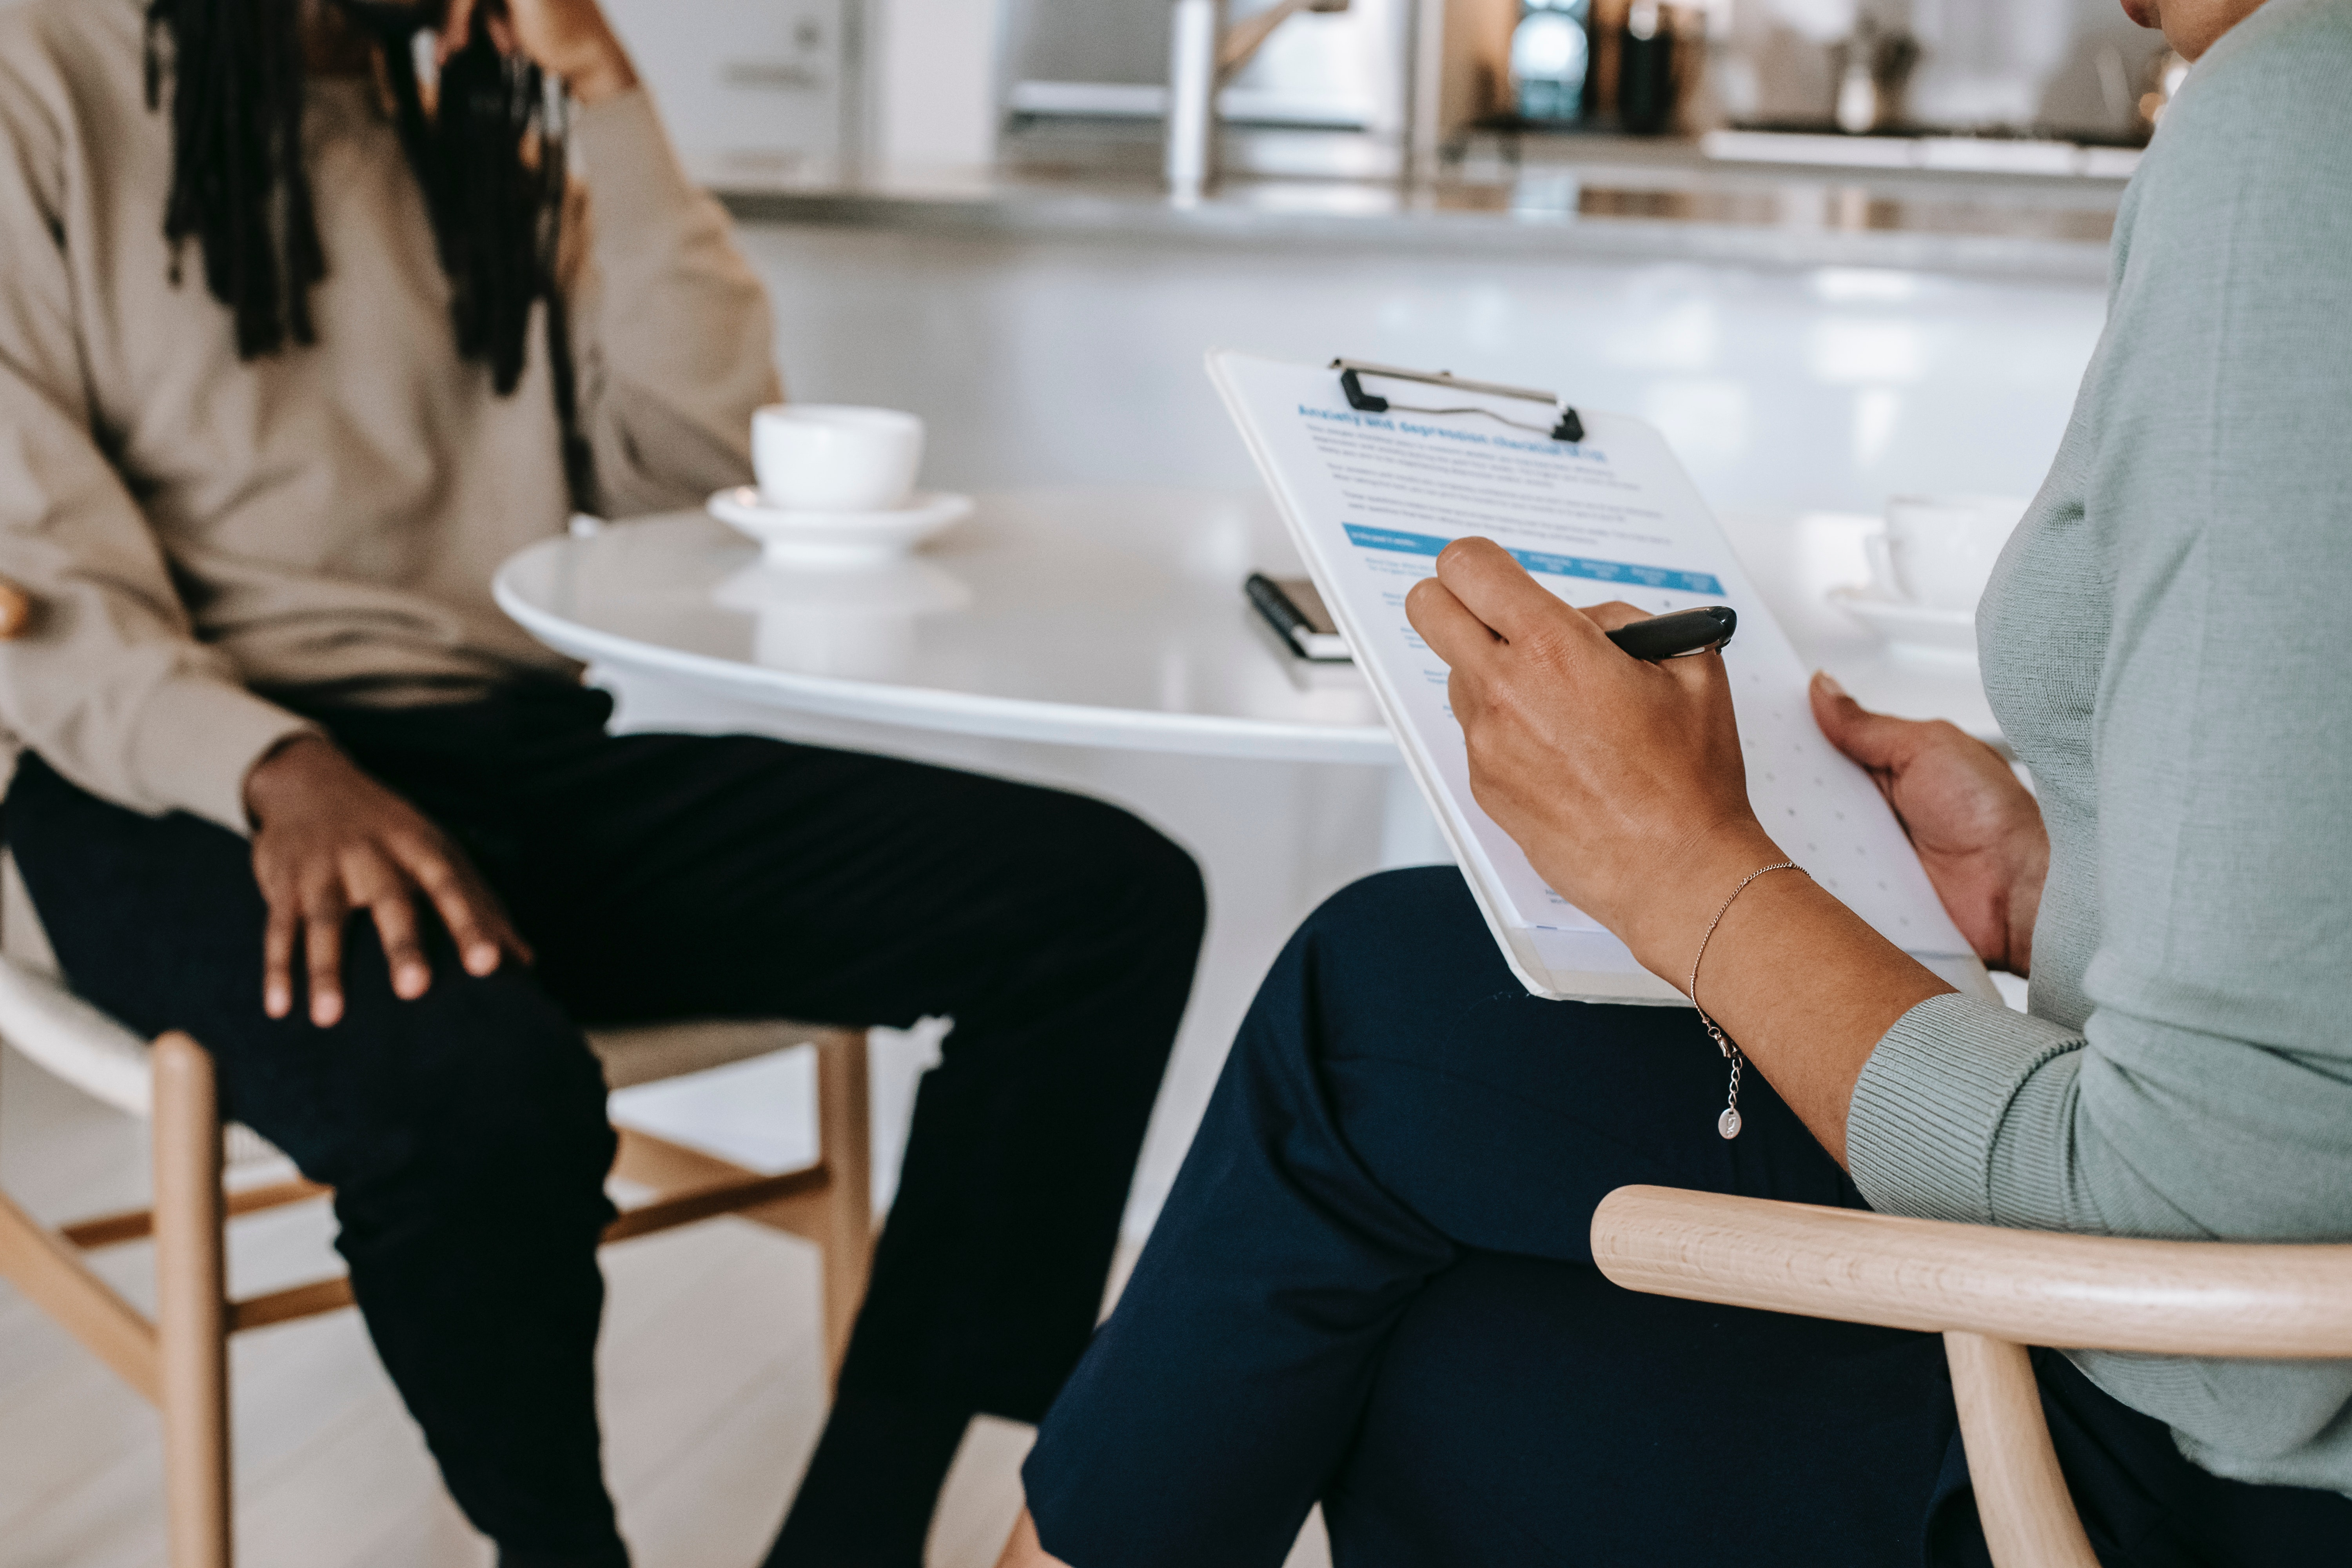 How do you nail a job interview over lunch while eating and talking? It sounds hard, but it doesn't have to be. This article will show you how to go from a job hunt to a successful job interview over a meal.